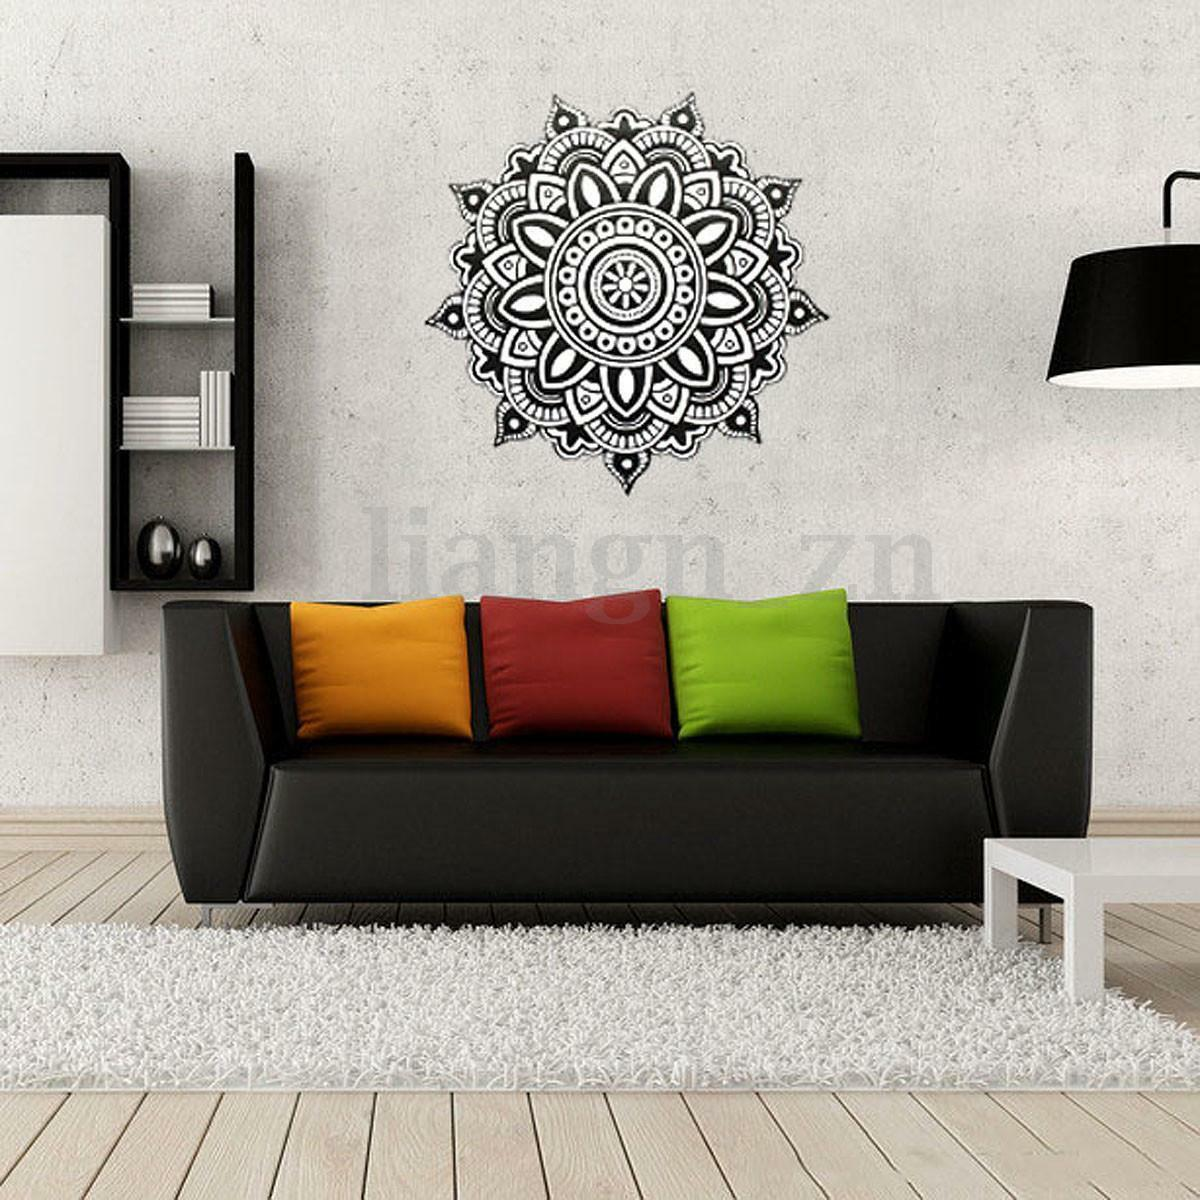 muraux sticker mural mandala fleur amovible d cor autocollant mur chambre salon eur 5 30. Black Bedroom Furniture Sets. Home Design Ideas